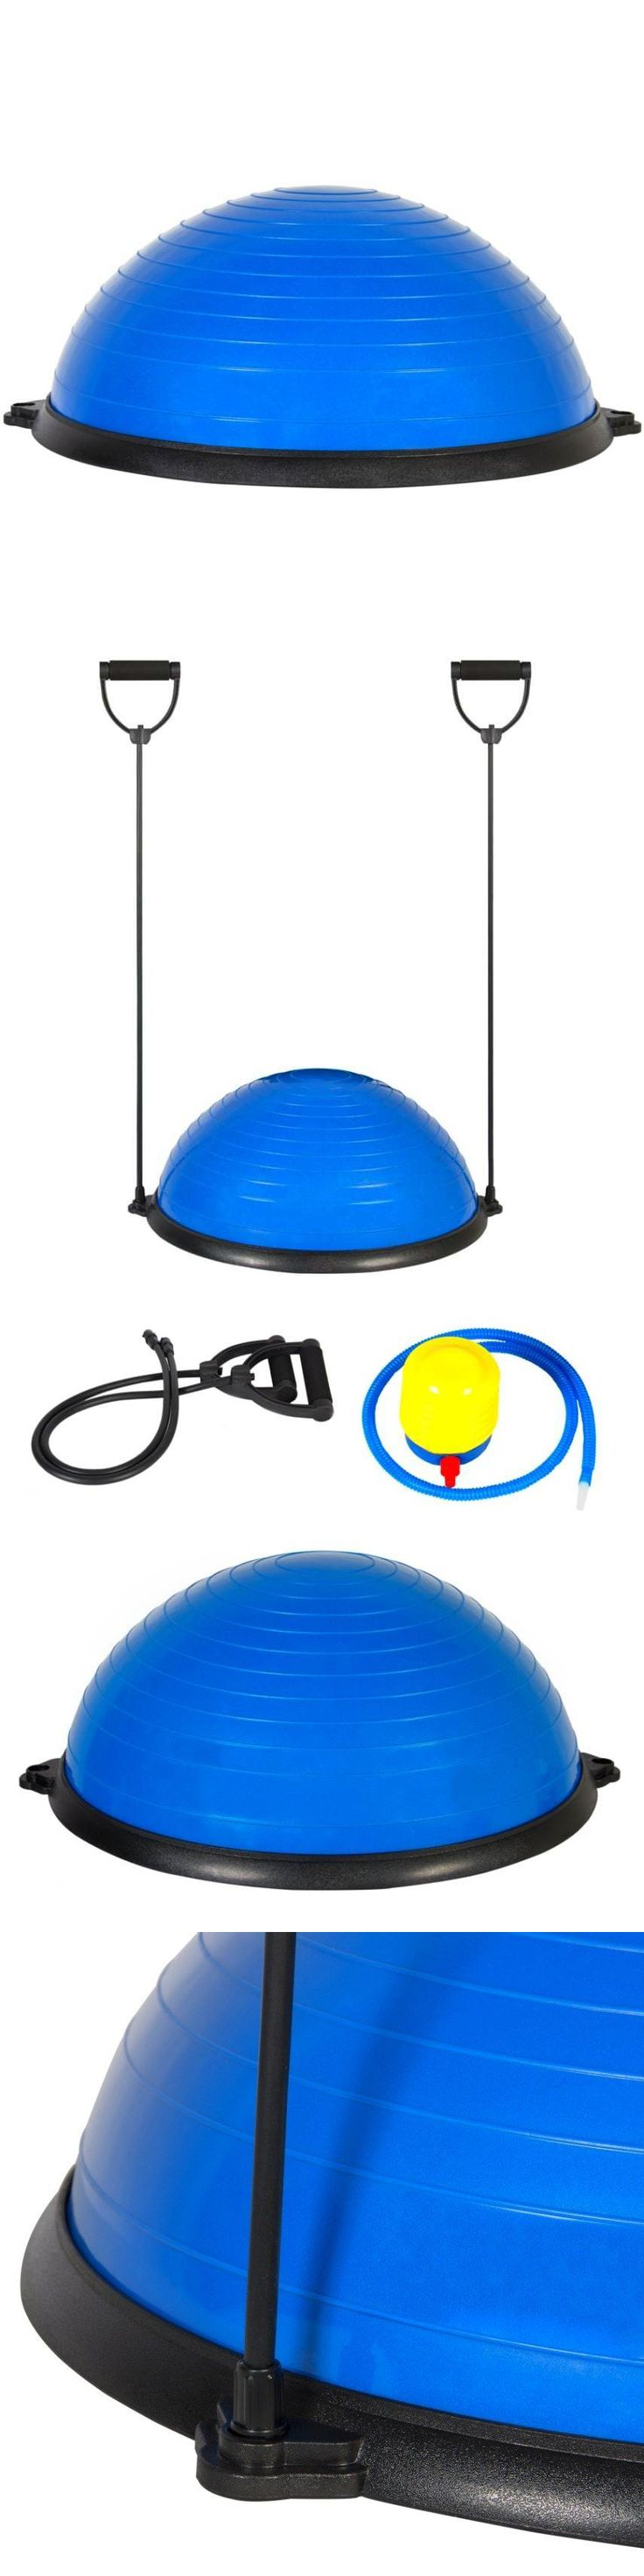 Exercise Balls 31390: Yoga Balance Trainer Ball W/ Resistance Bands Pump Blue Exercise Fitness BUY IT NOW ONLY: $84.99